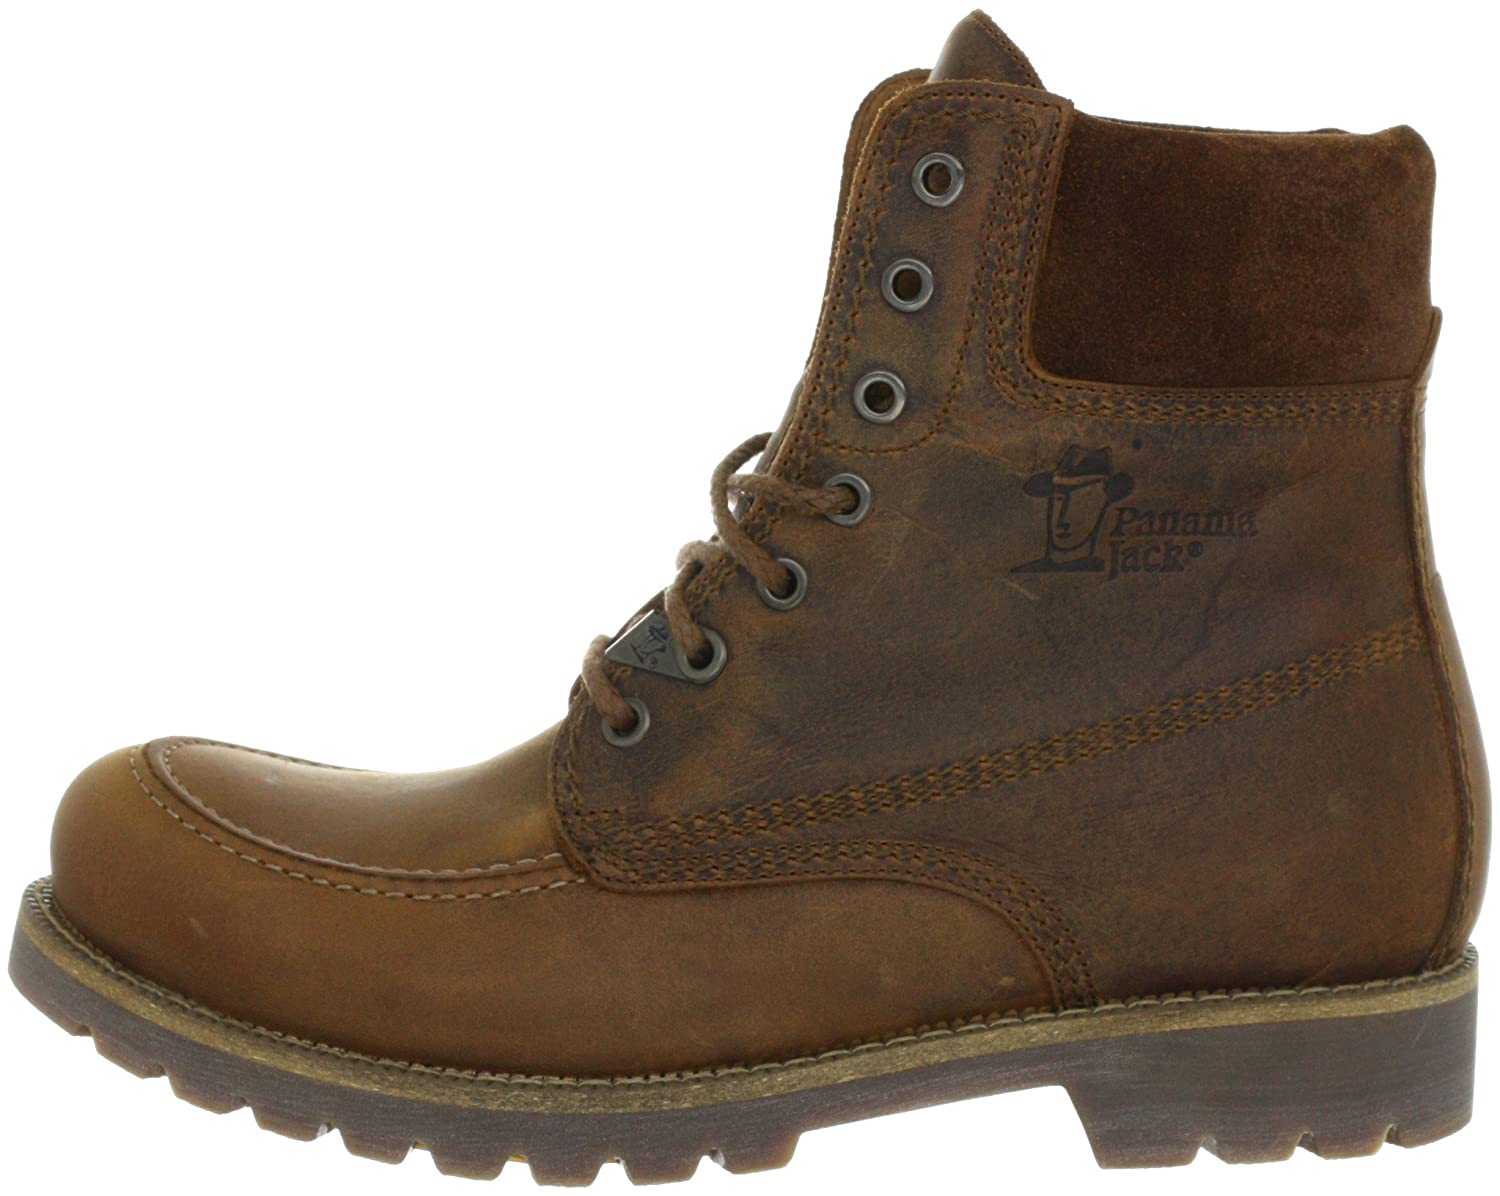 Cheap Sale Exclusive Mens Panama 03 C8 Ankle Boots Brown Braun (Cuero/Bark) Size: 44 Panama Jack Shop Offer For Sale Reliable Collections 8DbVjrPhy